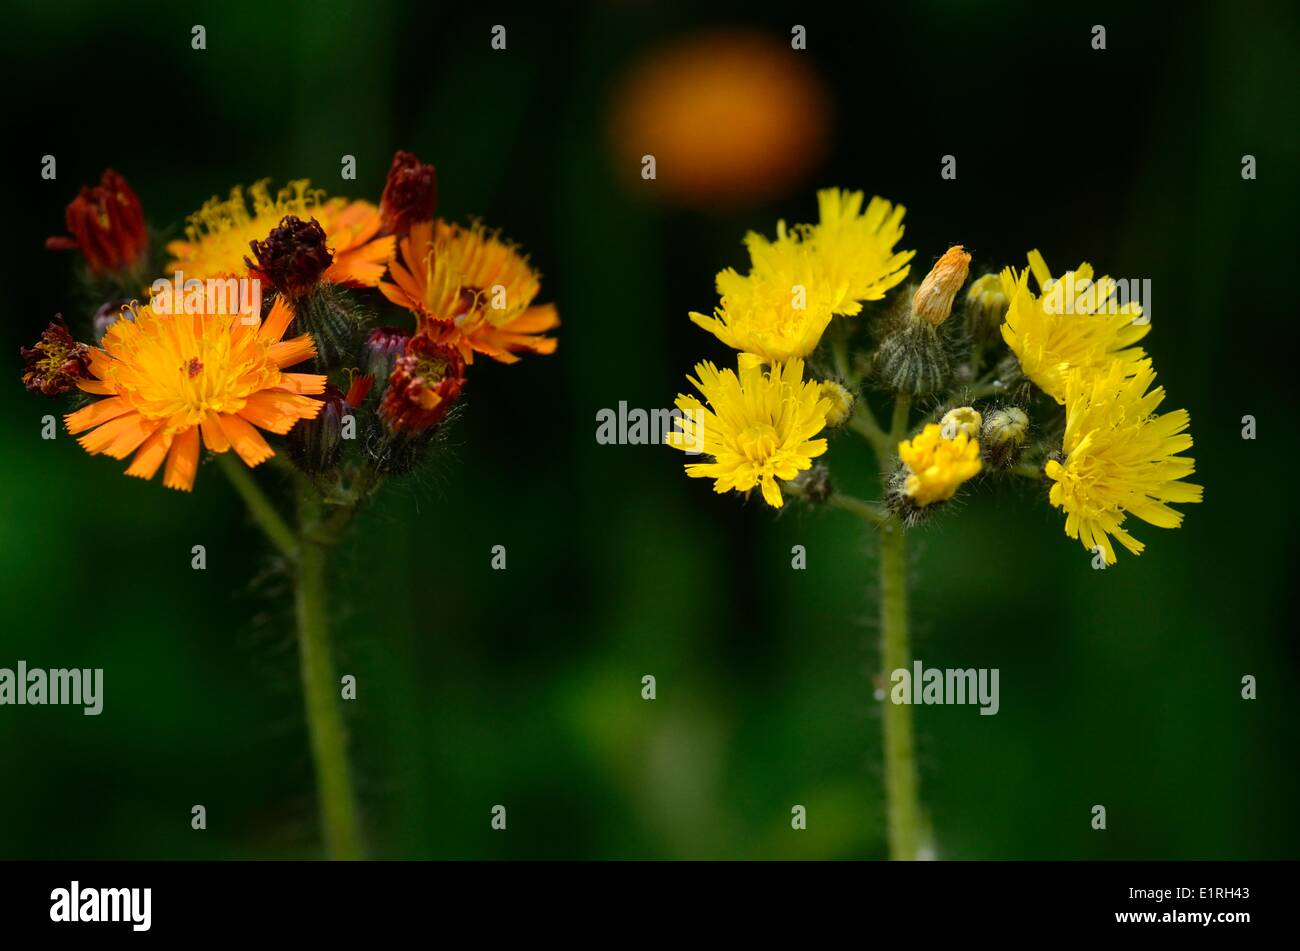 Inflorescence of Meadow Hawkweed besides the inflorescence of Orange Hawkweed - Stock Image